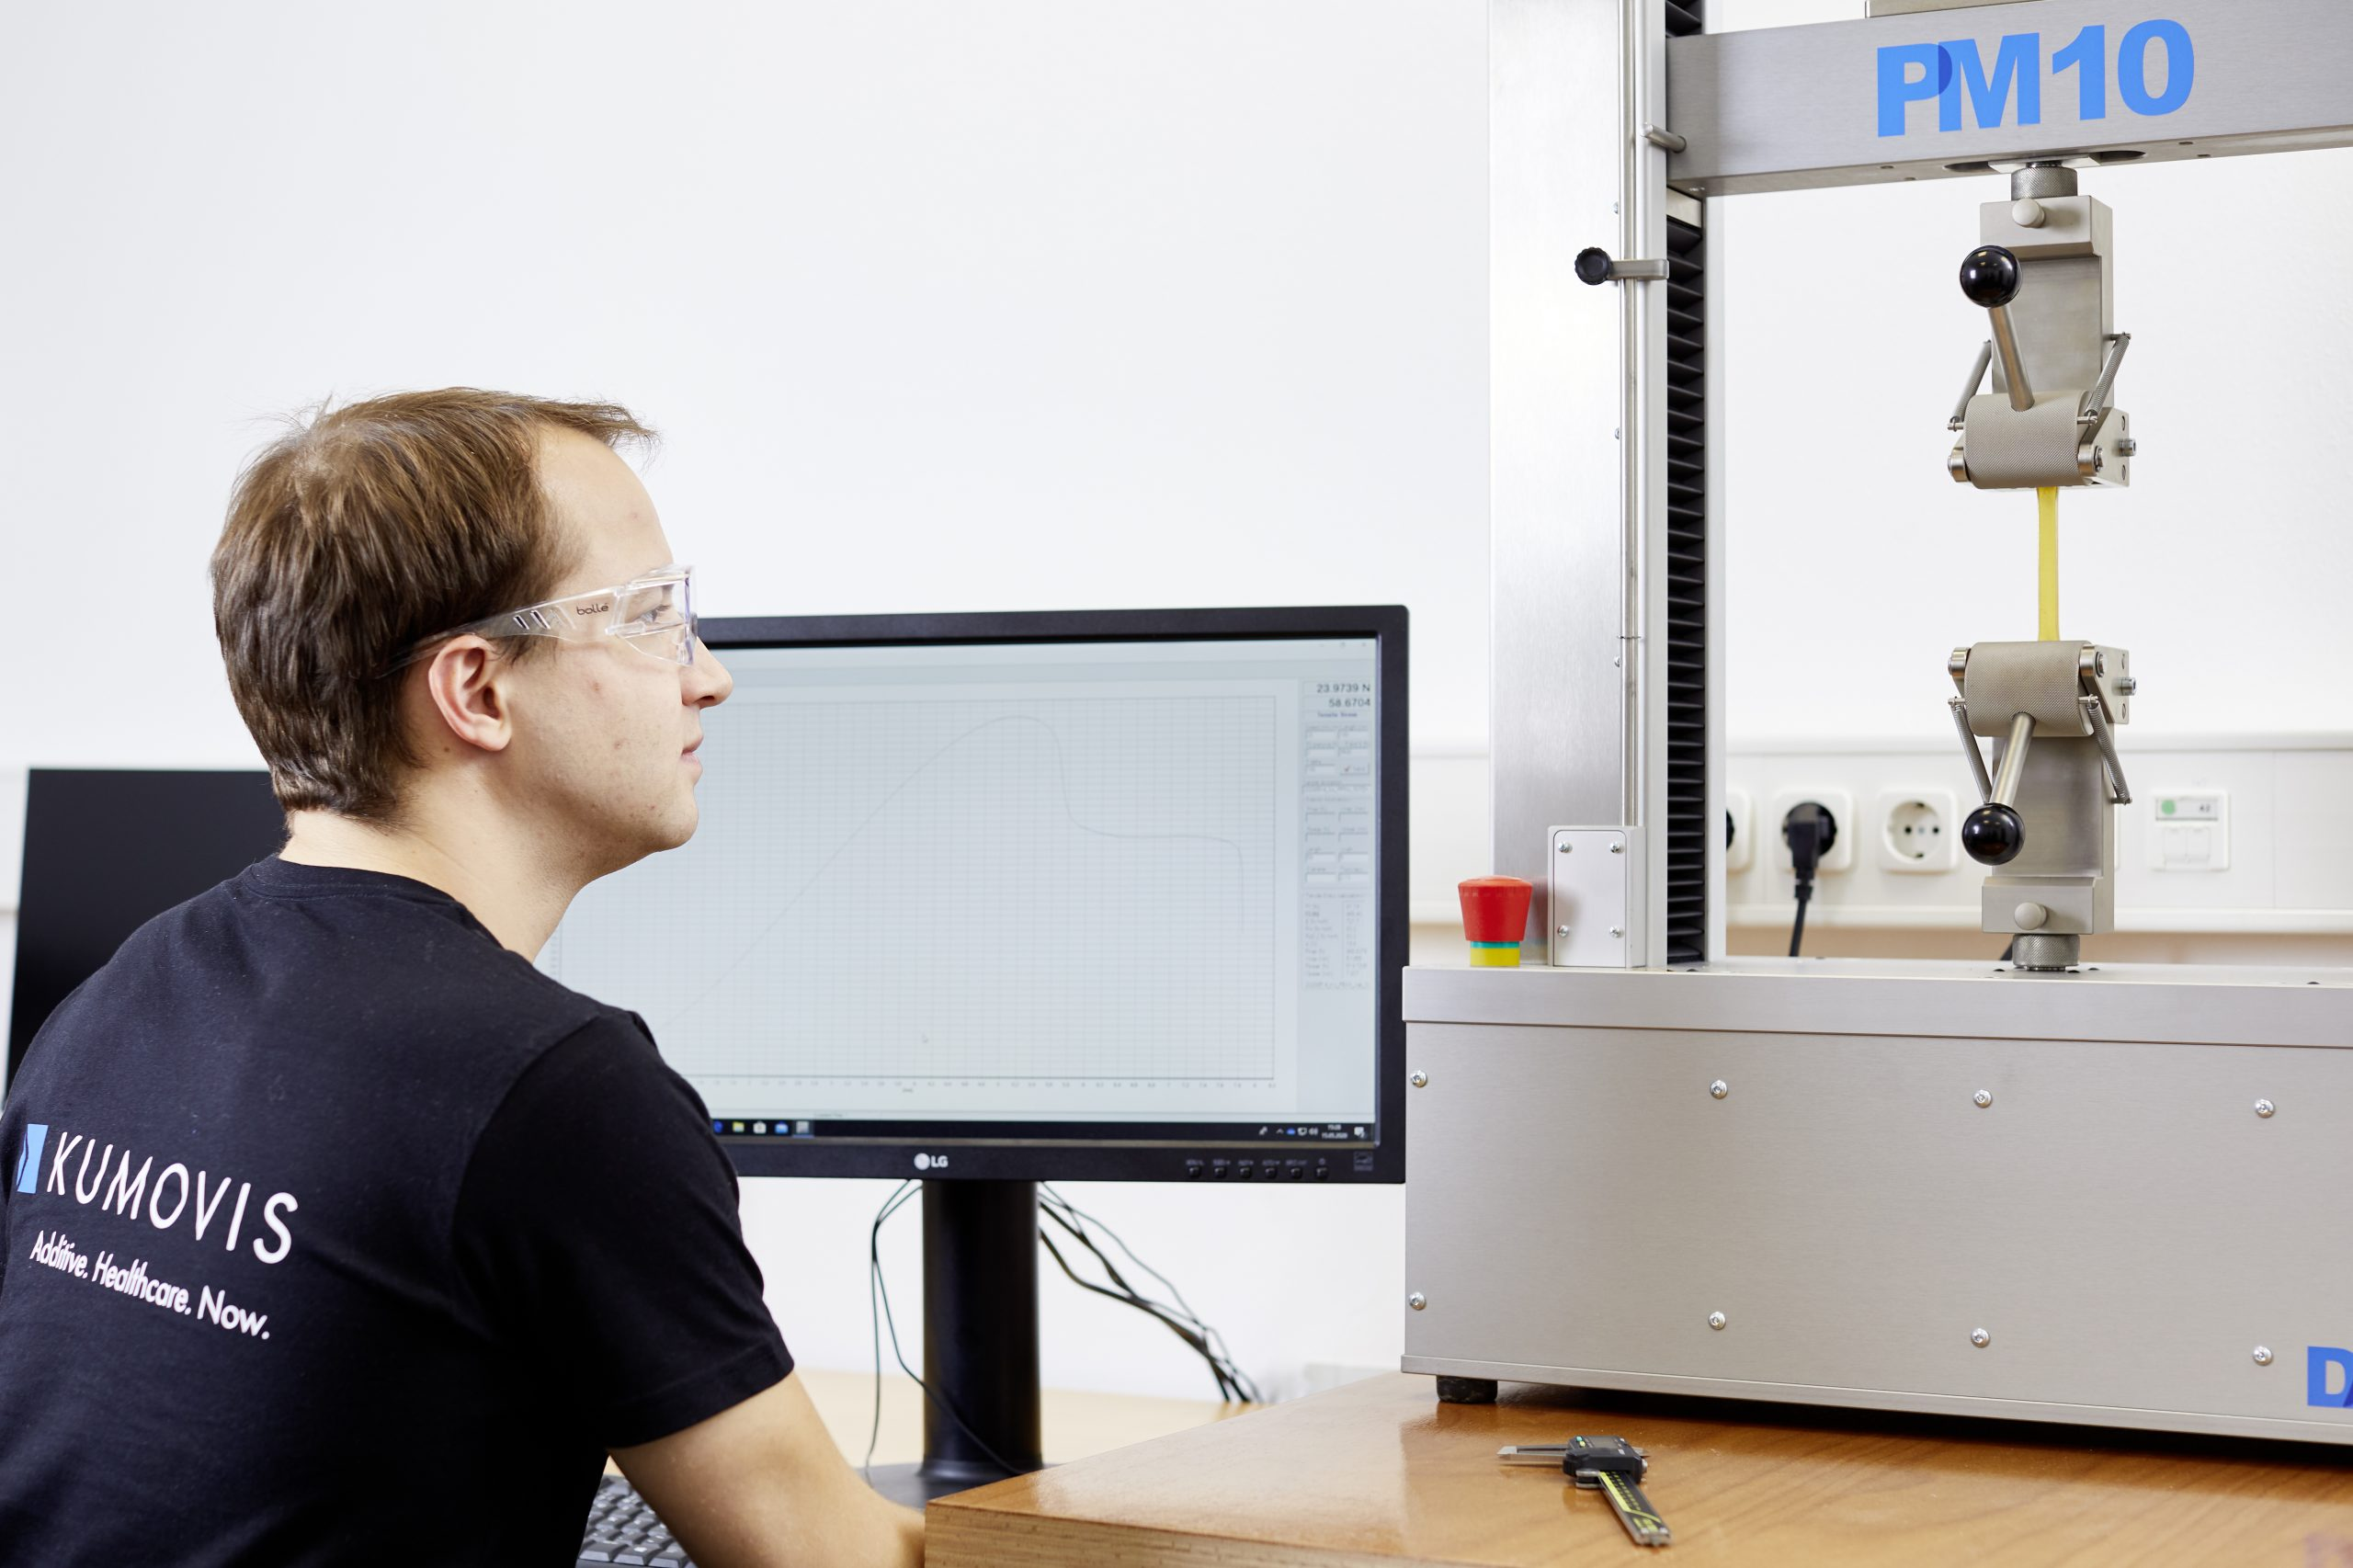 Kumovis employee sitting in front of computer monitor and test machine